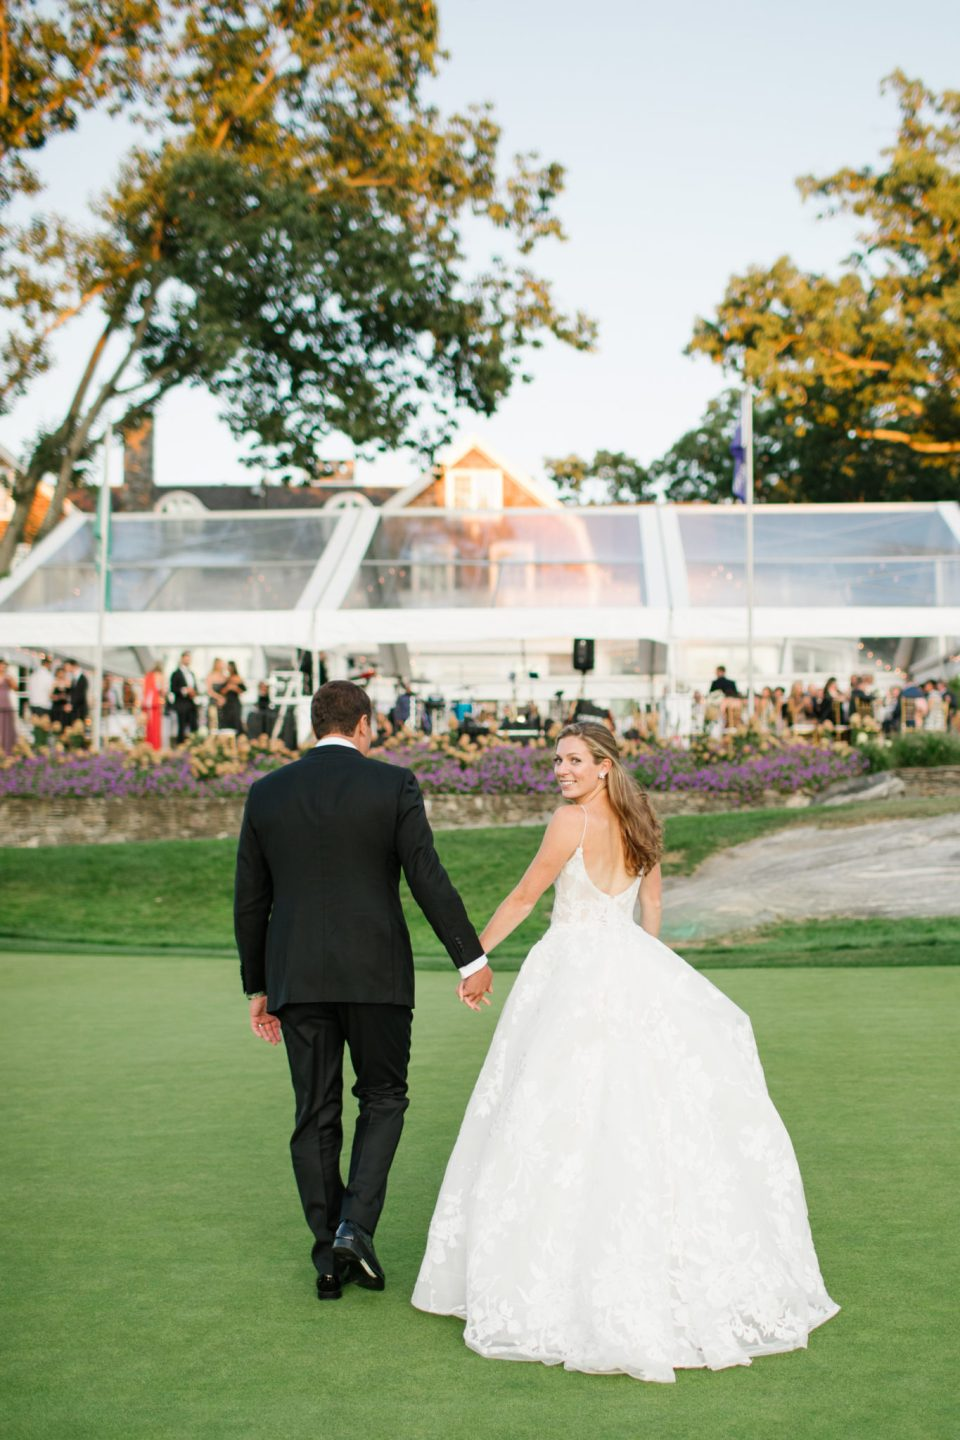 Apawamis Club Wedding reception outdoors photographed by Ashley Mac Photographs